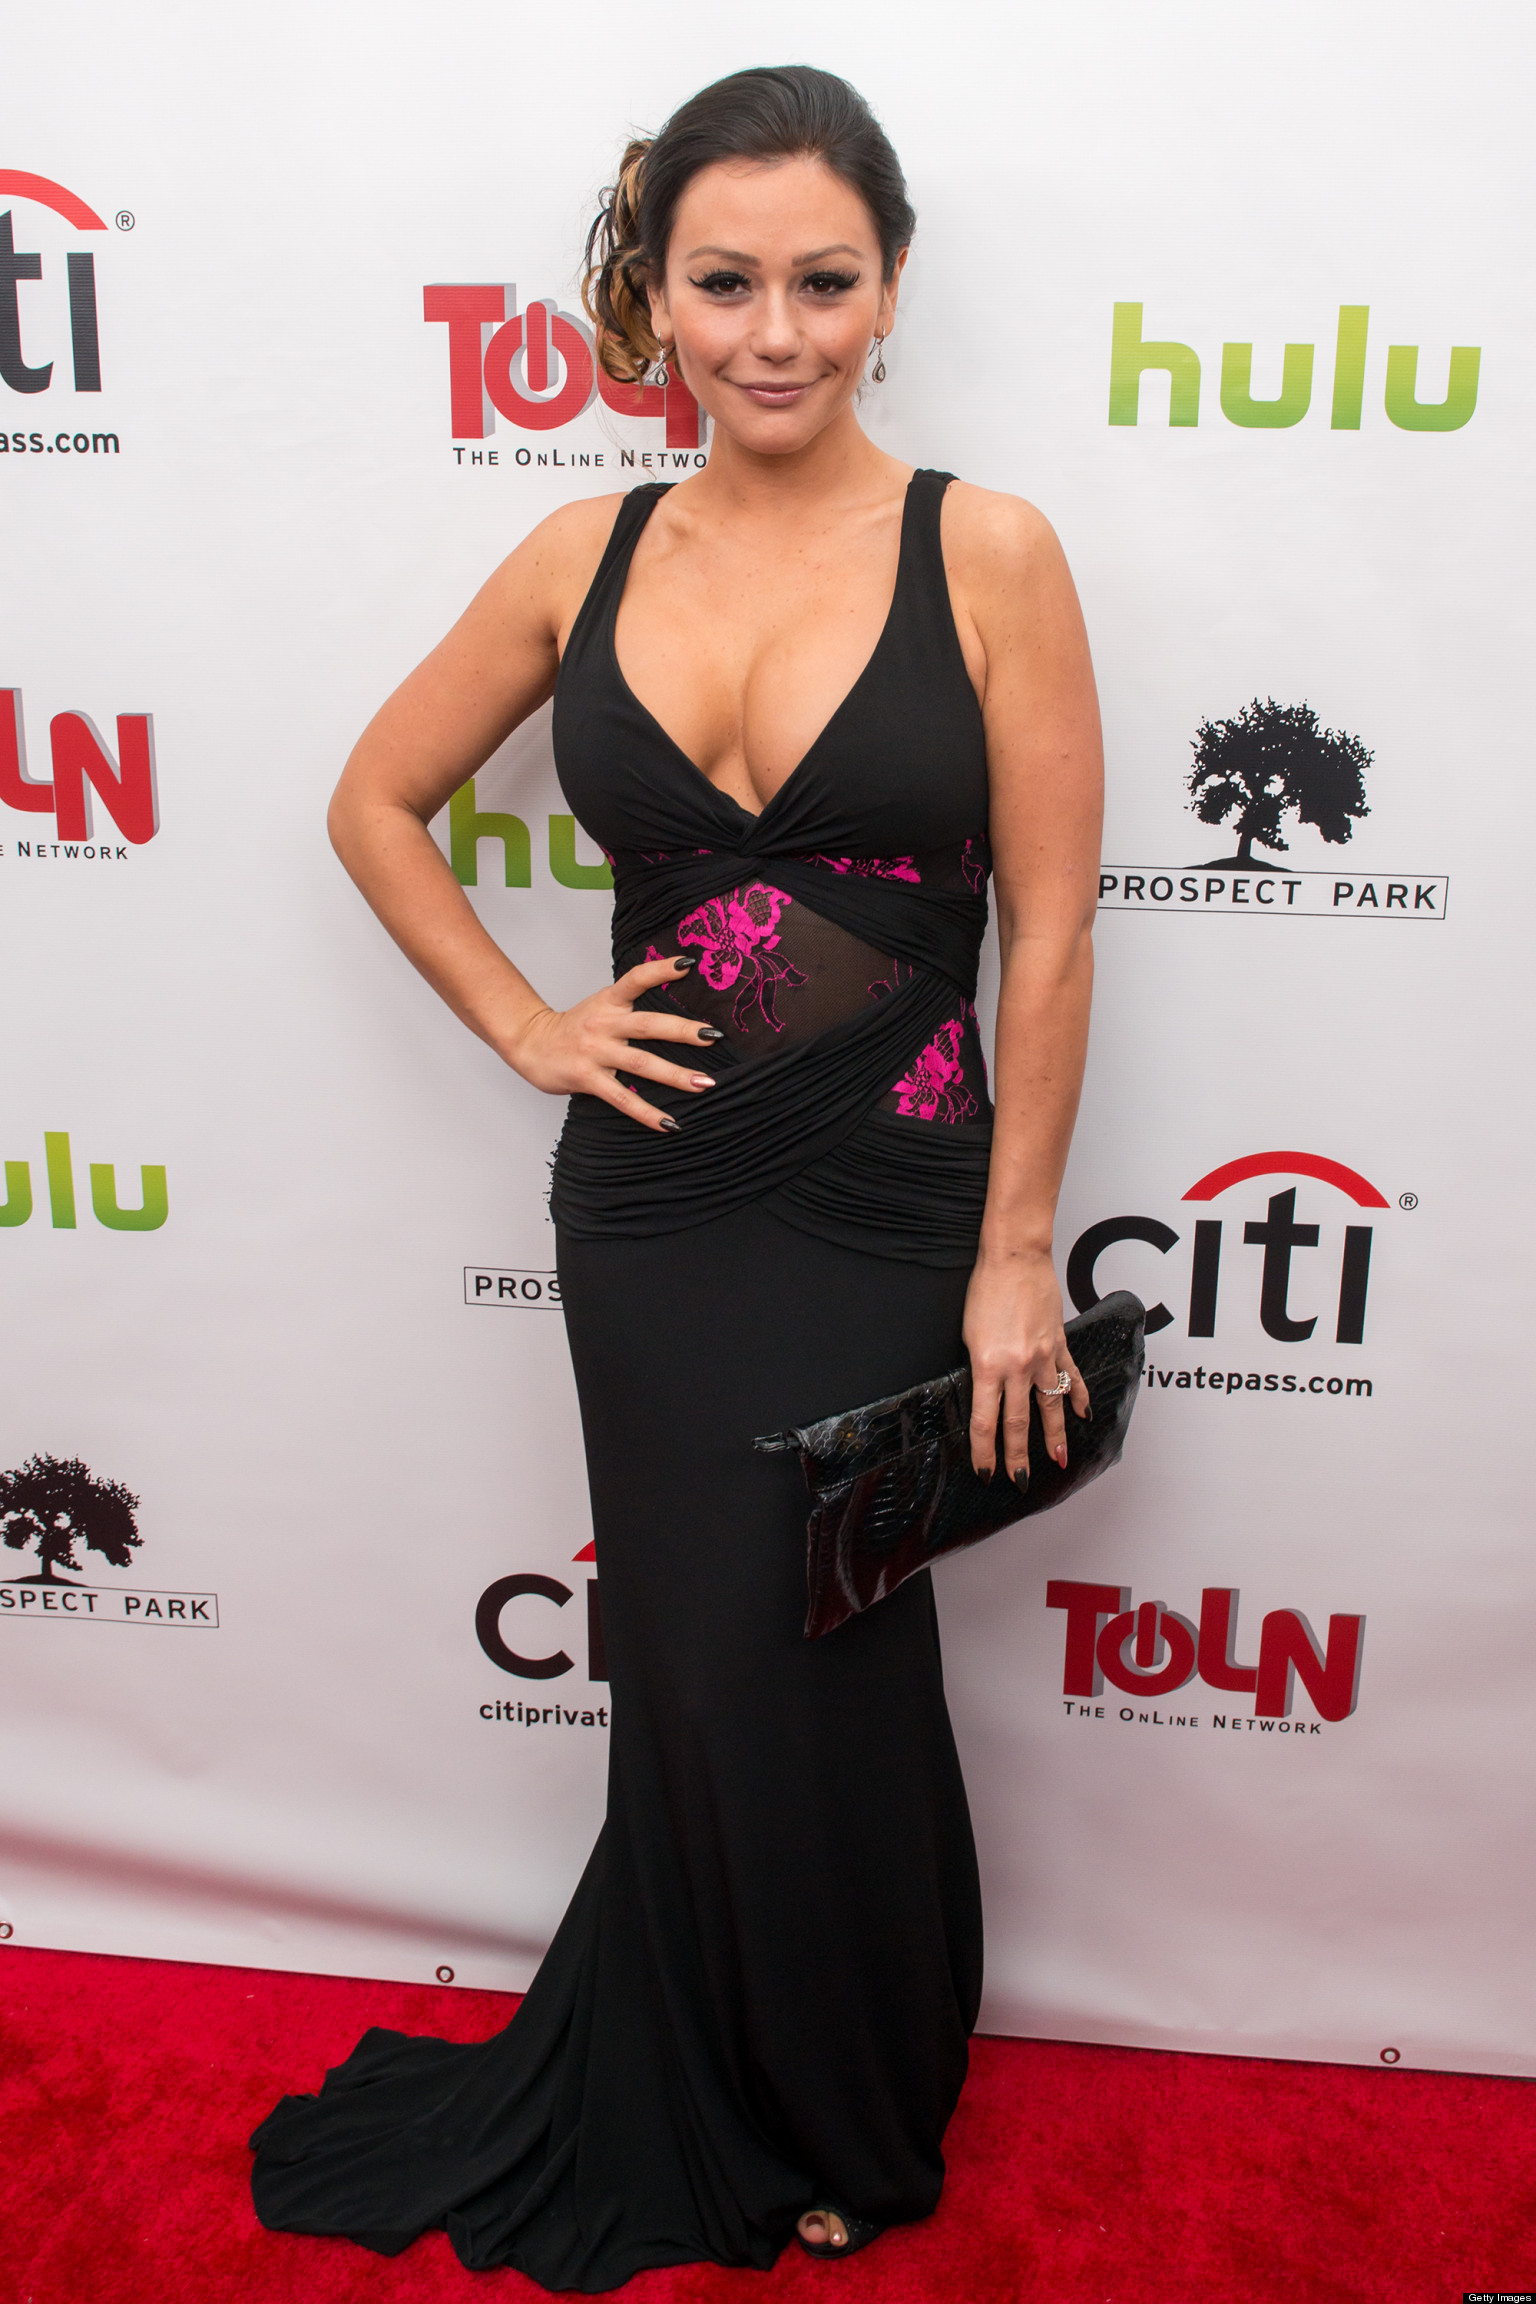 Jwoww S Cleavage Nearly Busts Out Of Her Dress Photos